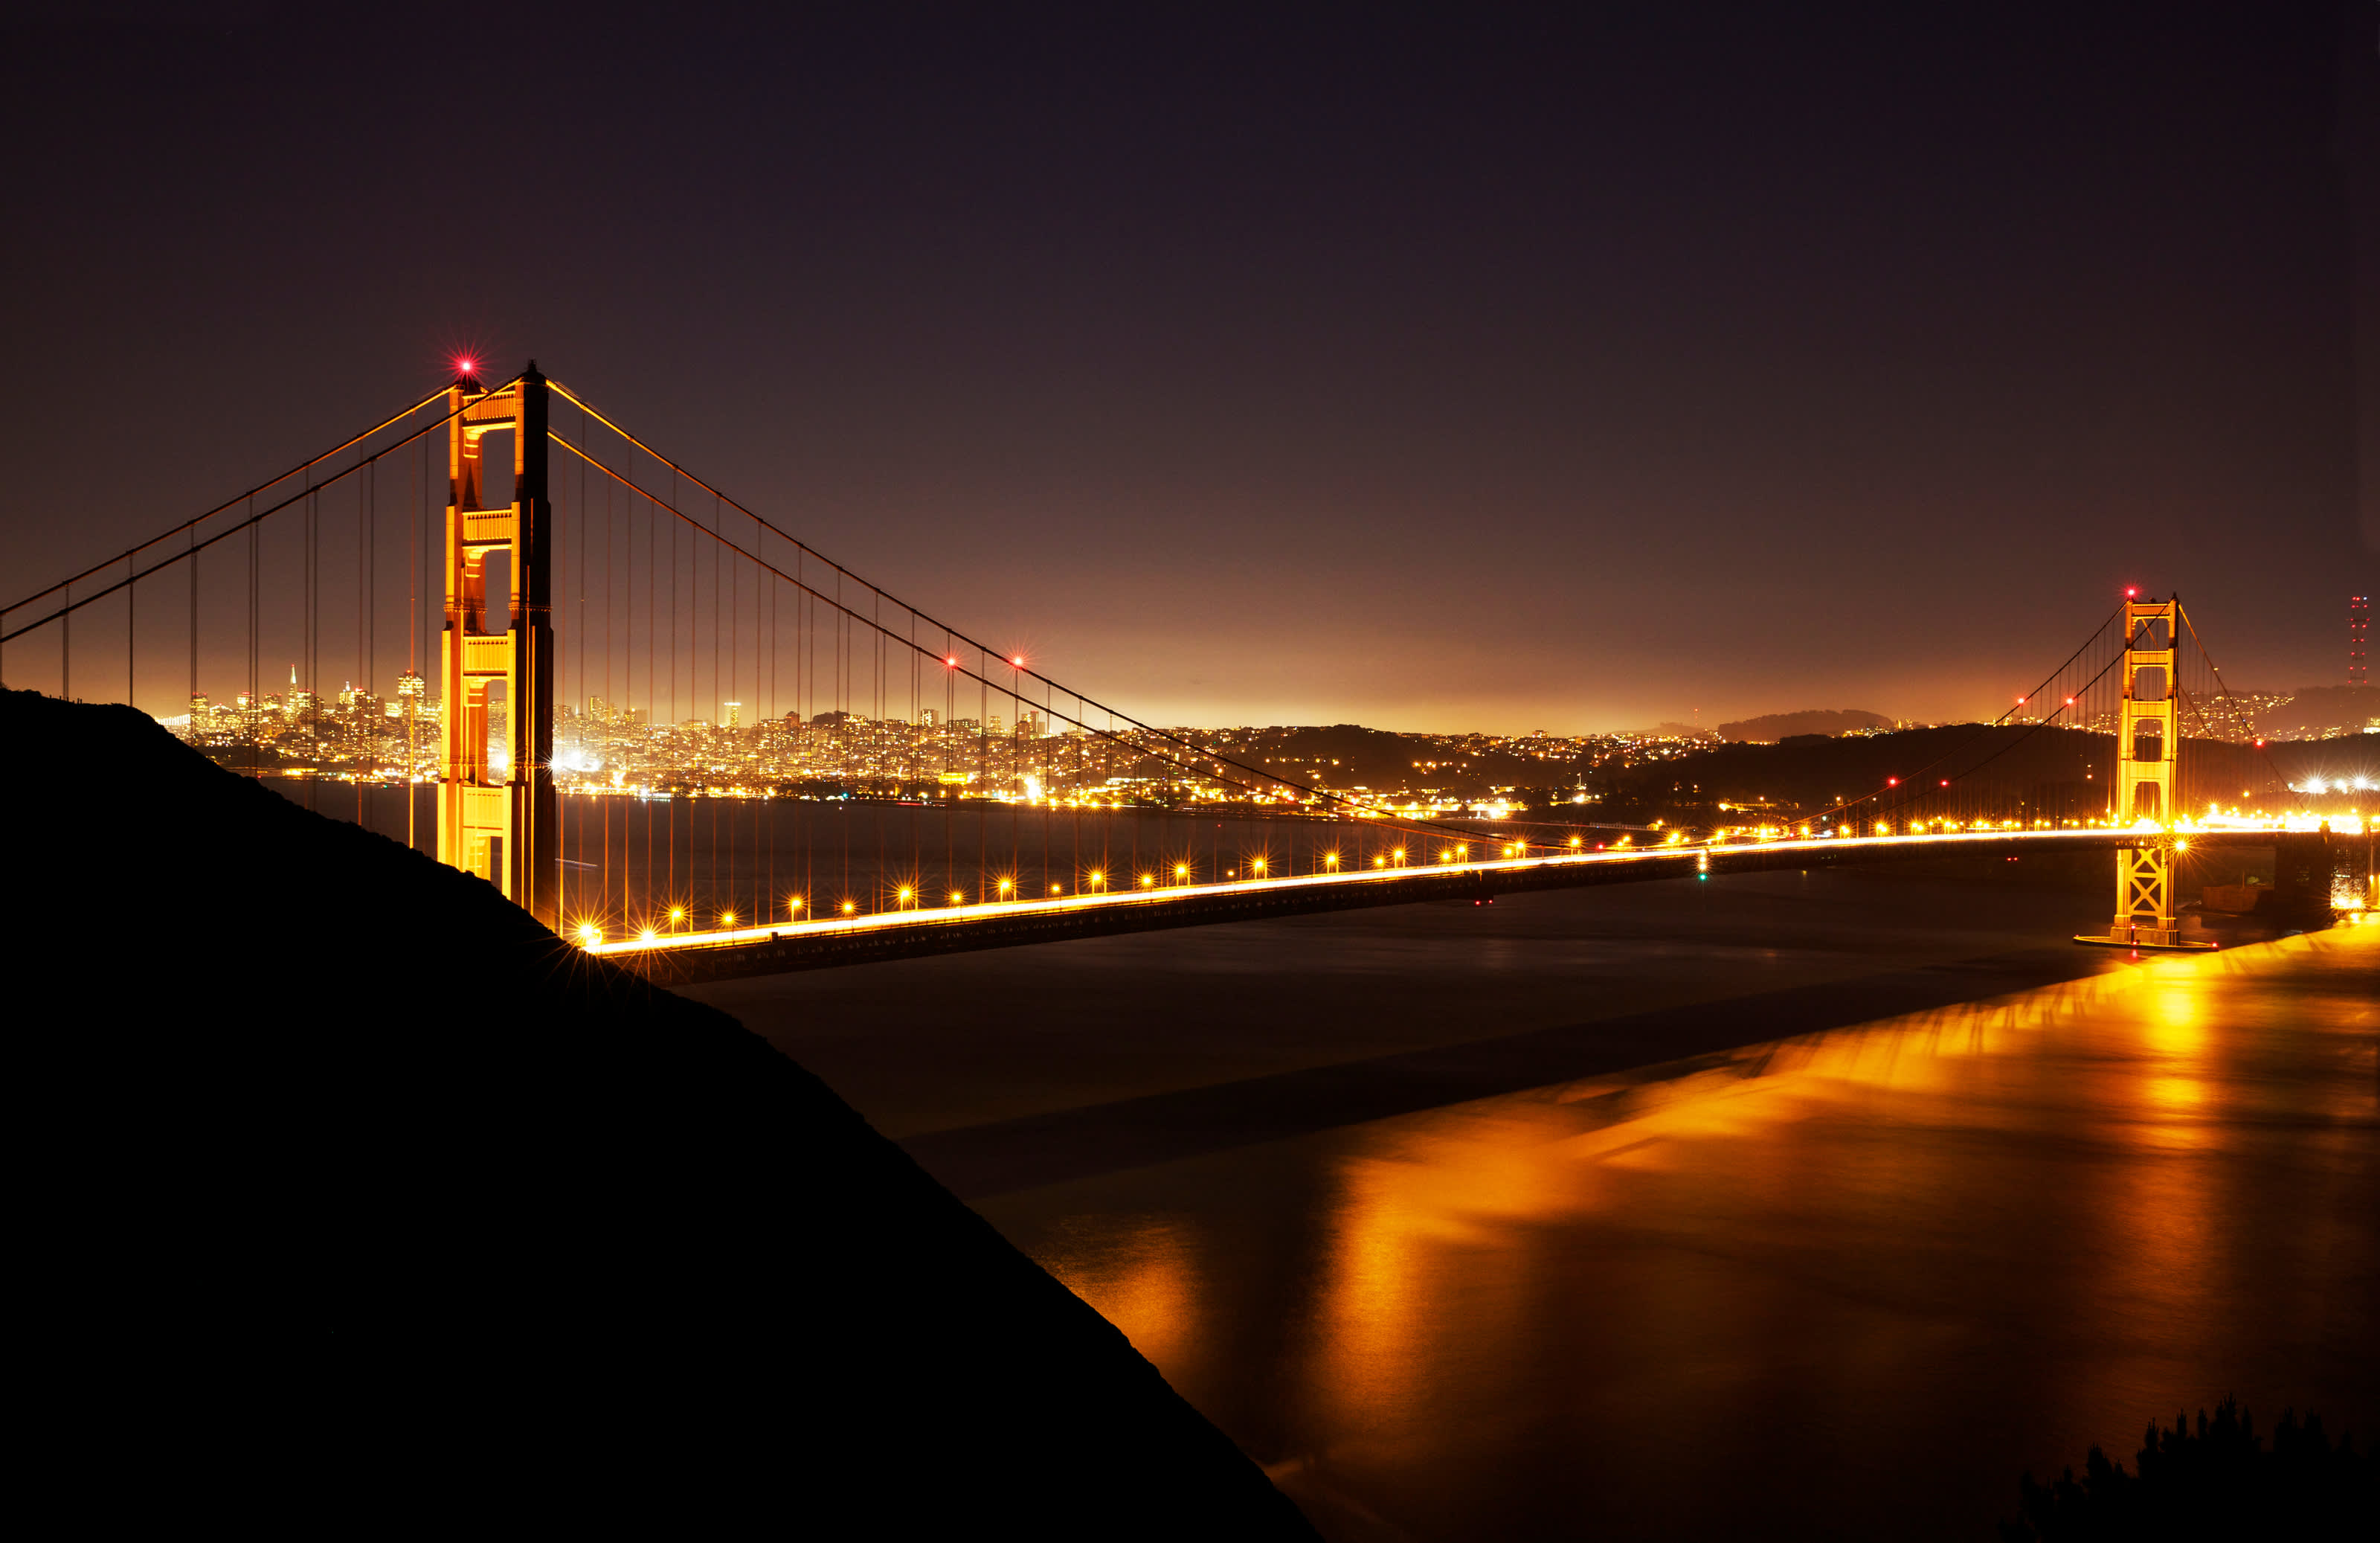 San Francisco business trip? How to make the most of those off-duty hours